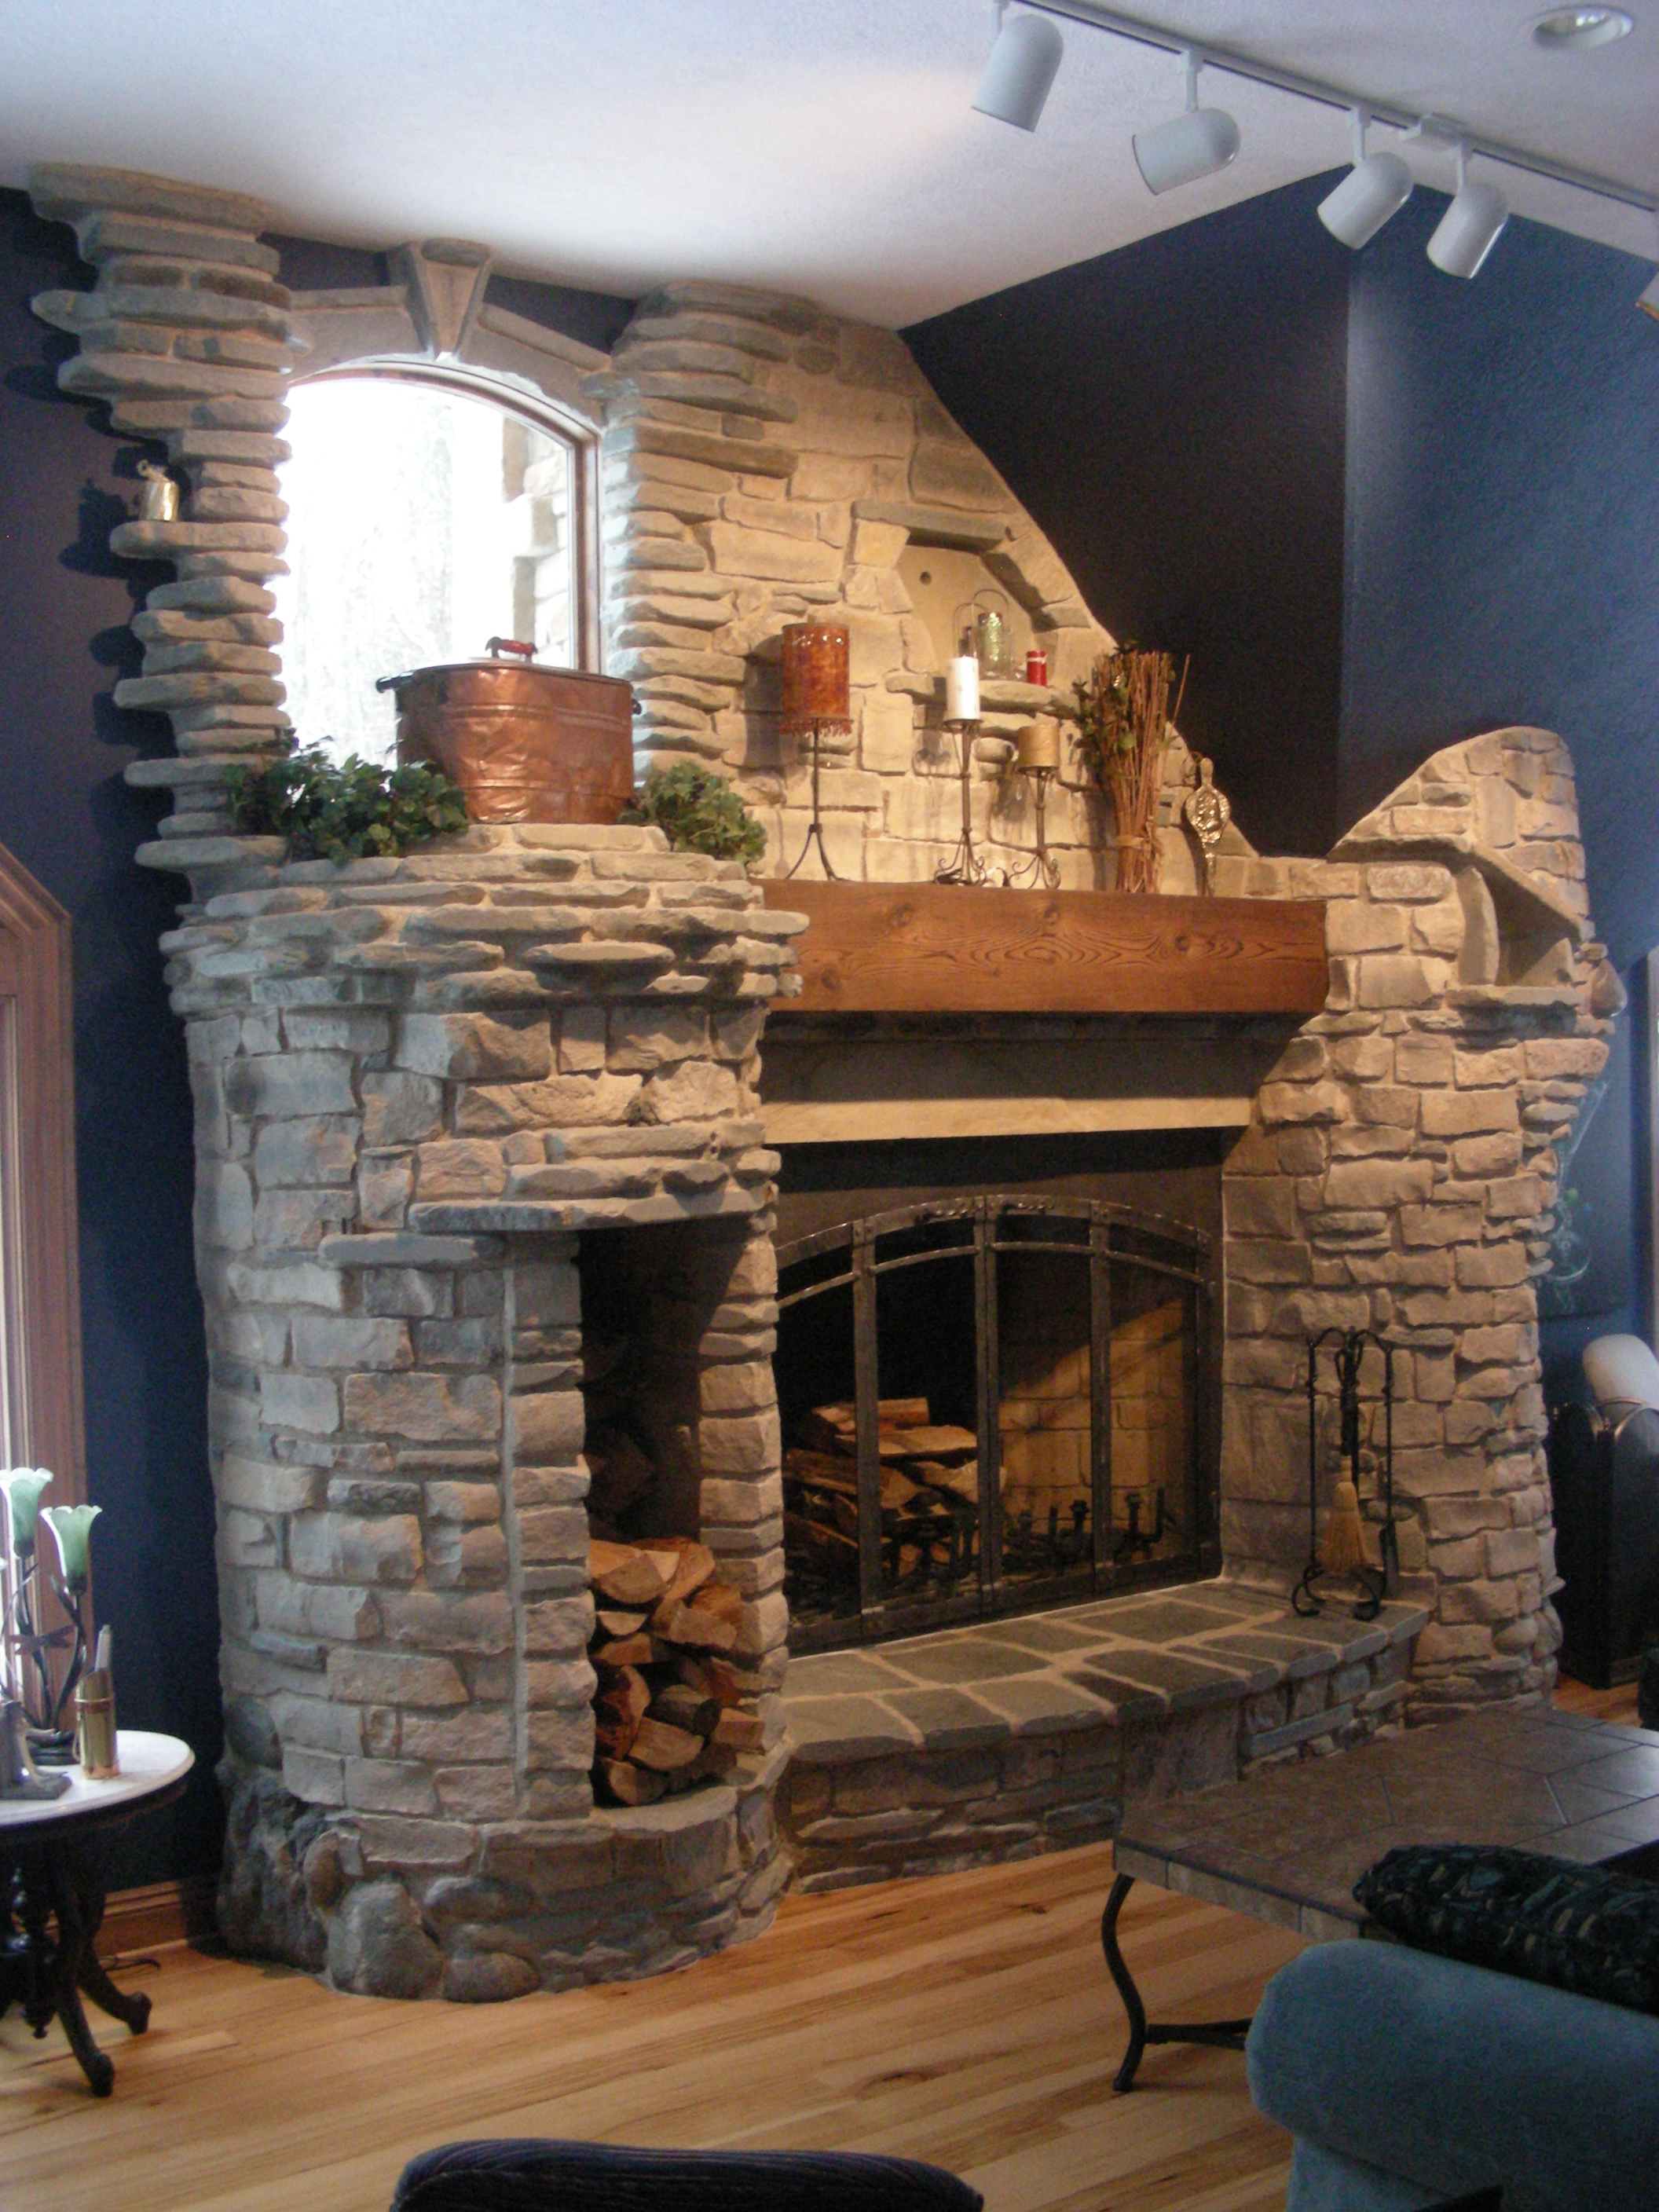 6 foot rumford fireplace natural stone yoder masonry inc. Black Bedroom Furniture Sets. Home Design Ideas